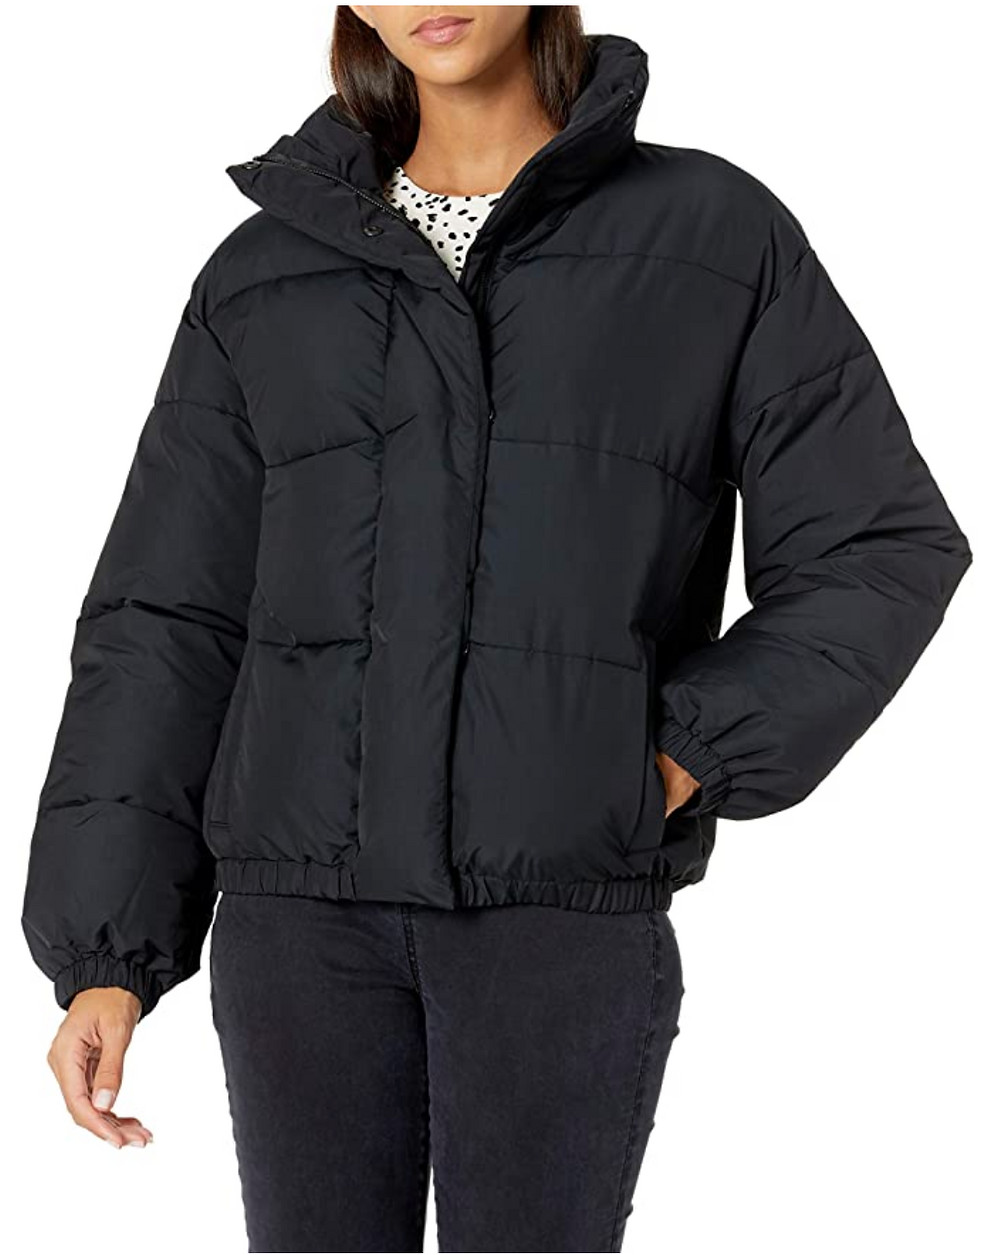 Puffer Jacket, from Amazon, under $60. Great for daily casual use.